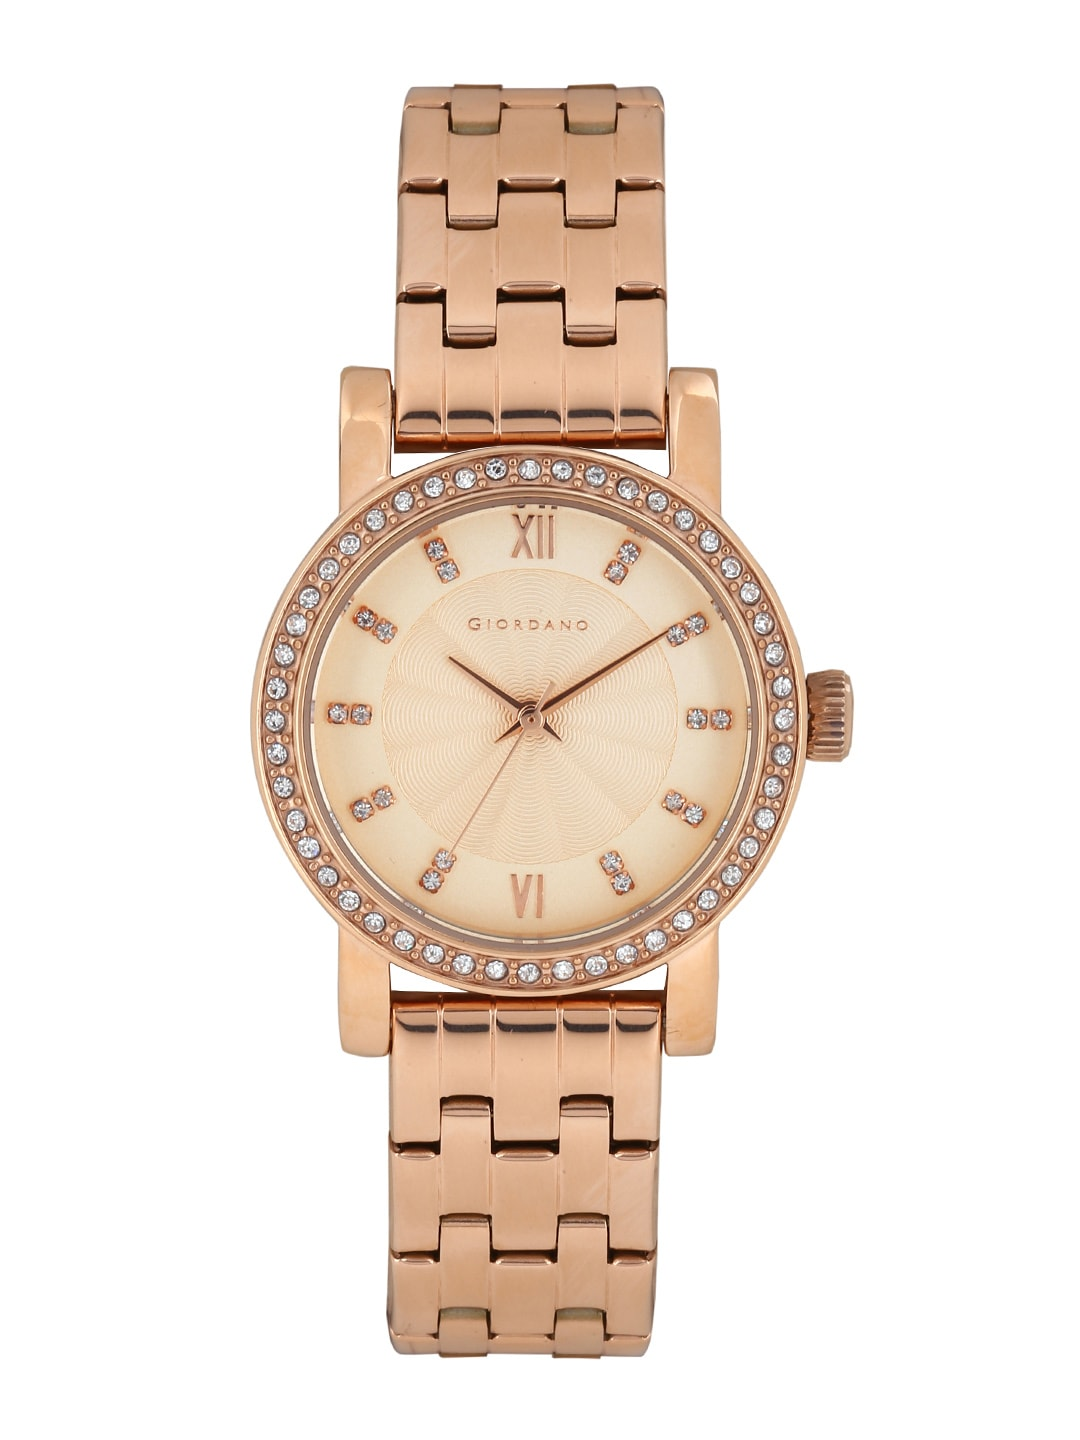 GIORDANO Women Rose Gold-Toned Dial Watch 2729-44 image